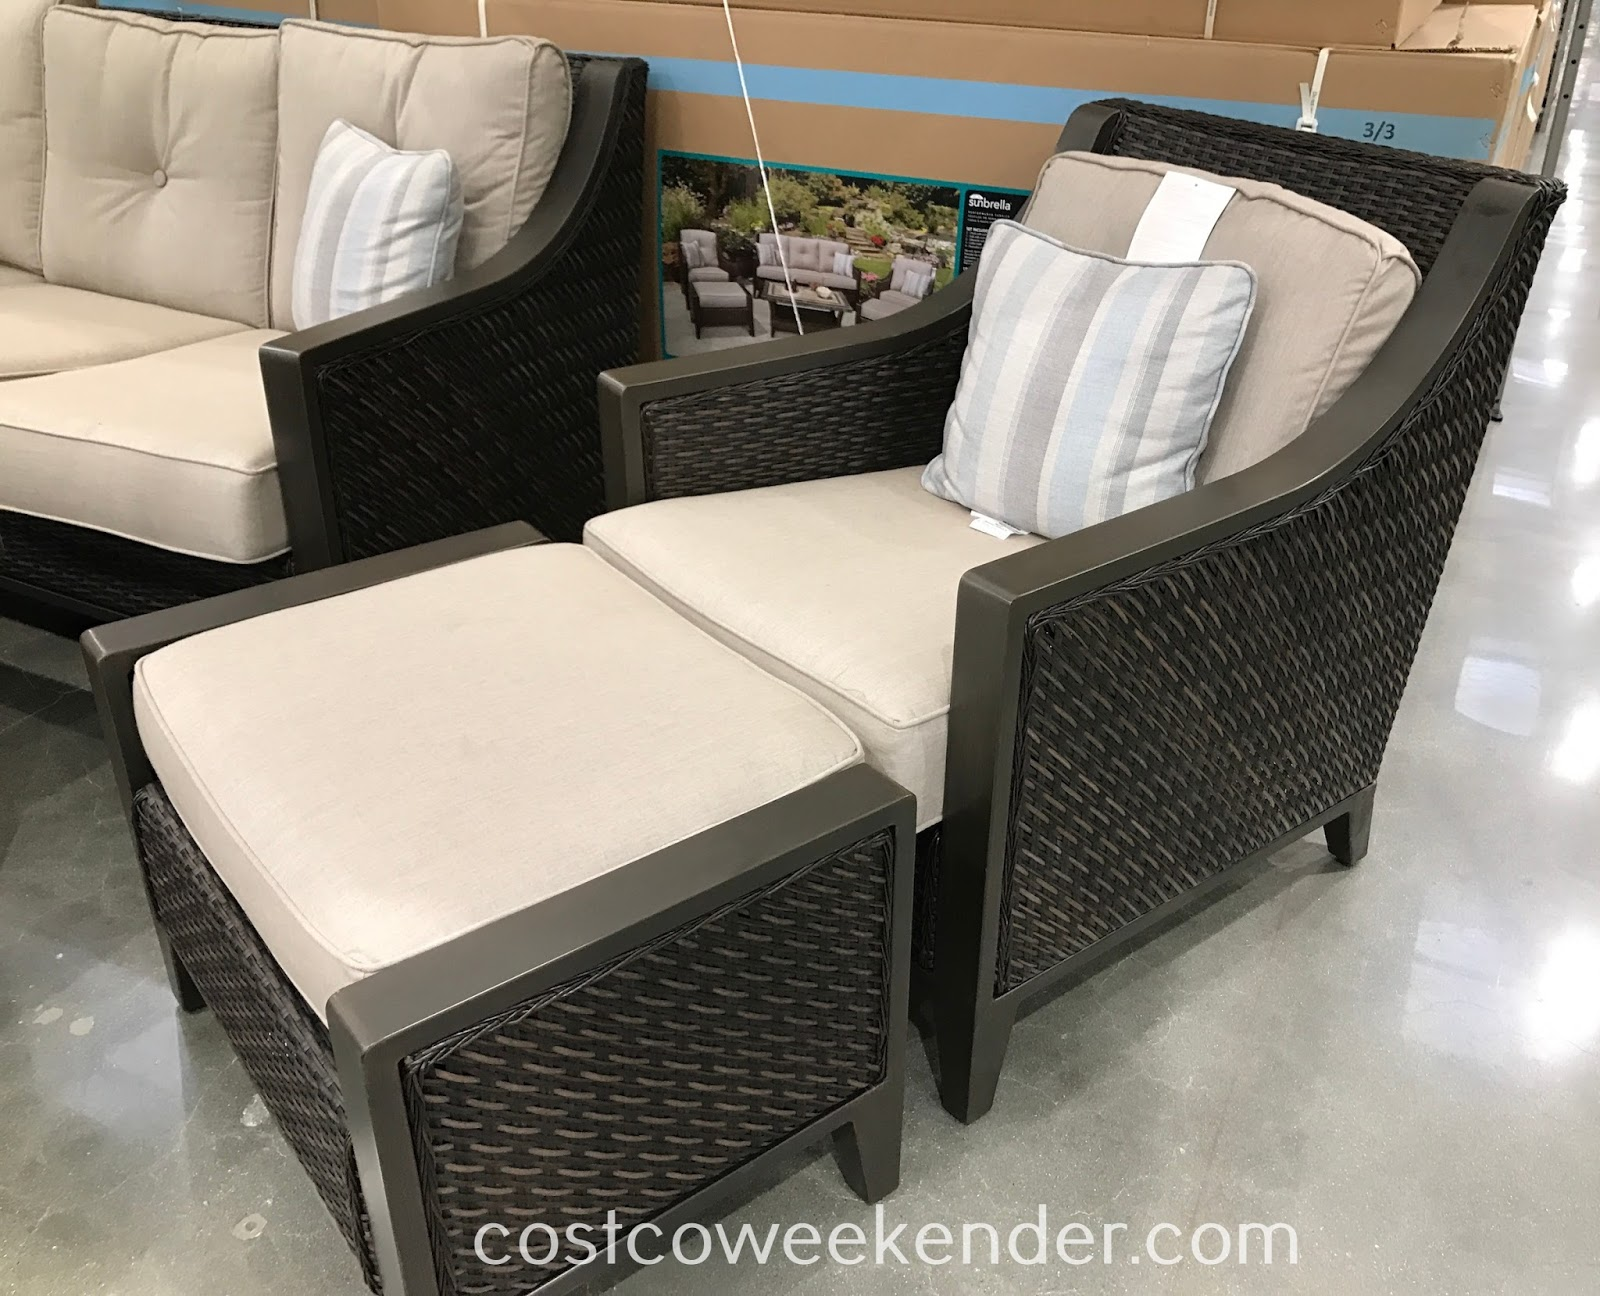 Agio 6-piece Woven Deep Seating Set: just in time for summer outdoor fun!